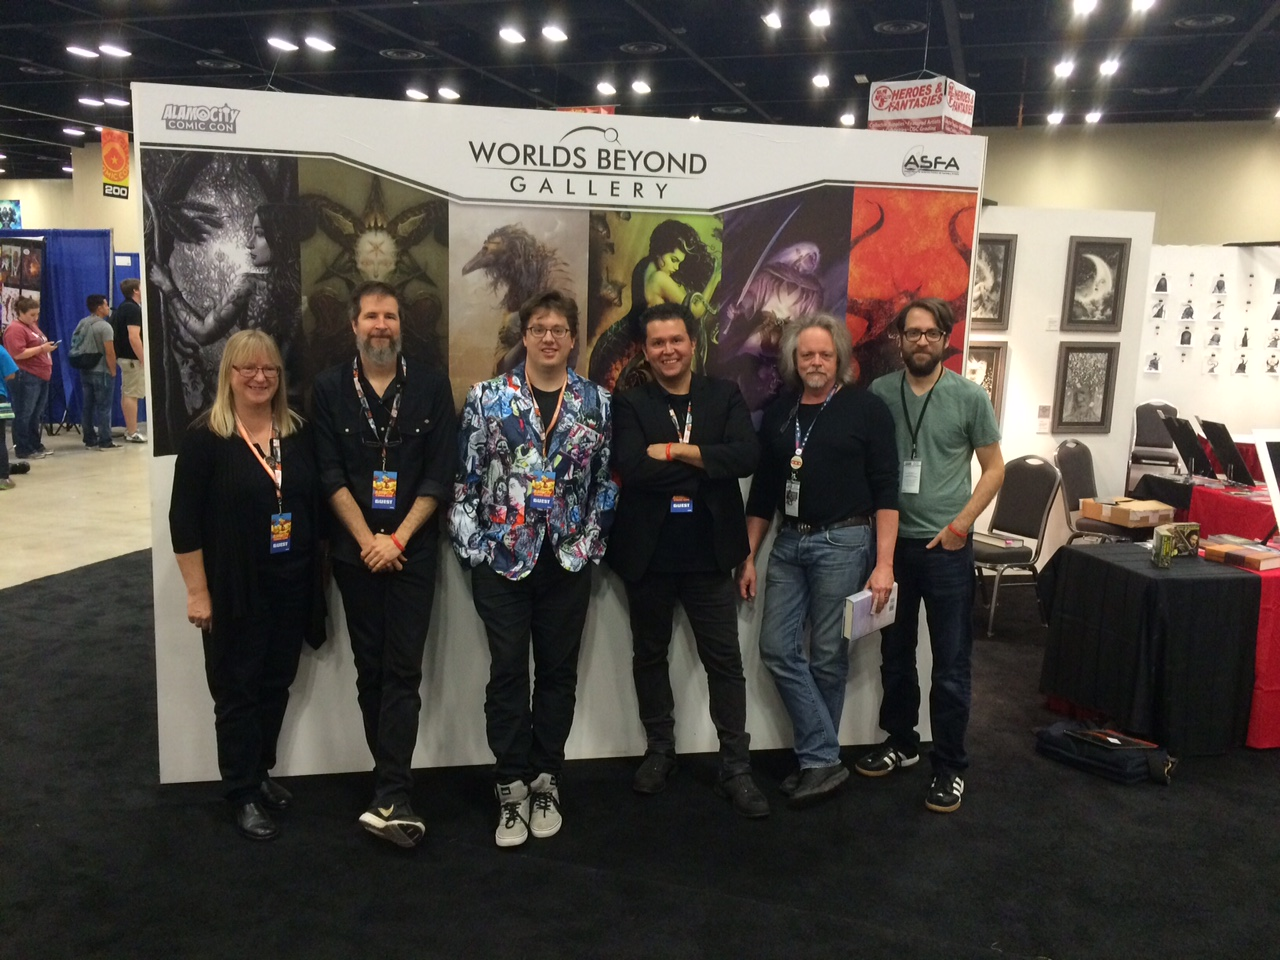 The Worlds Beyond Gallery Artists / Alamo City Comic Con 2016: Ruth Sanderson, Brom, Peter Mohrbacher, John Picacio, Todd Lockwood, and Jeffrey Alan Love.